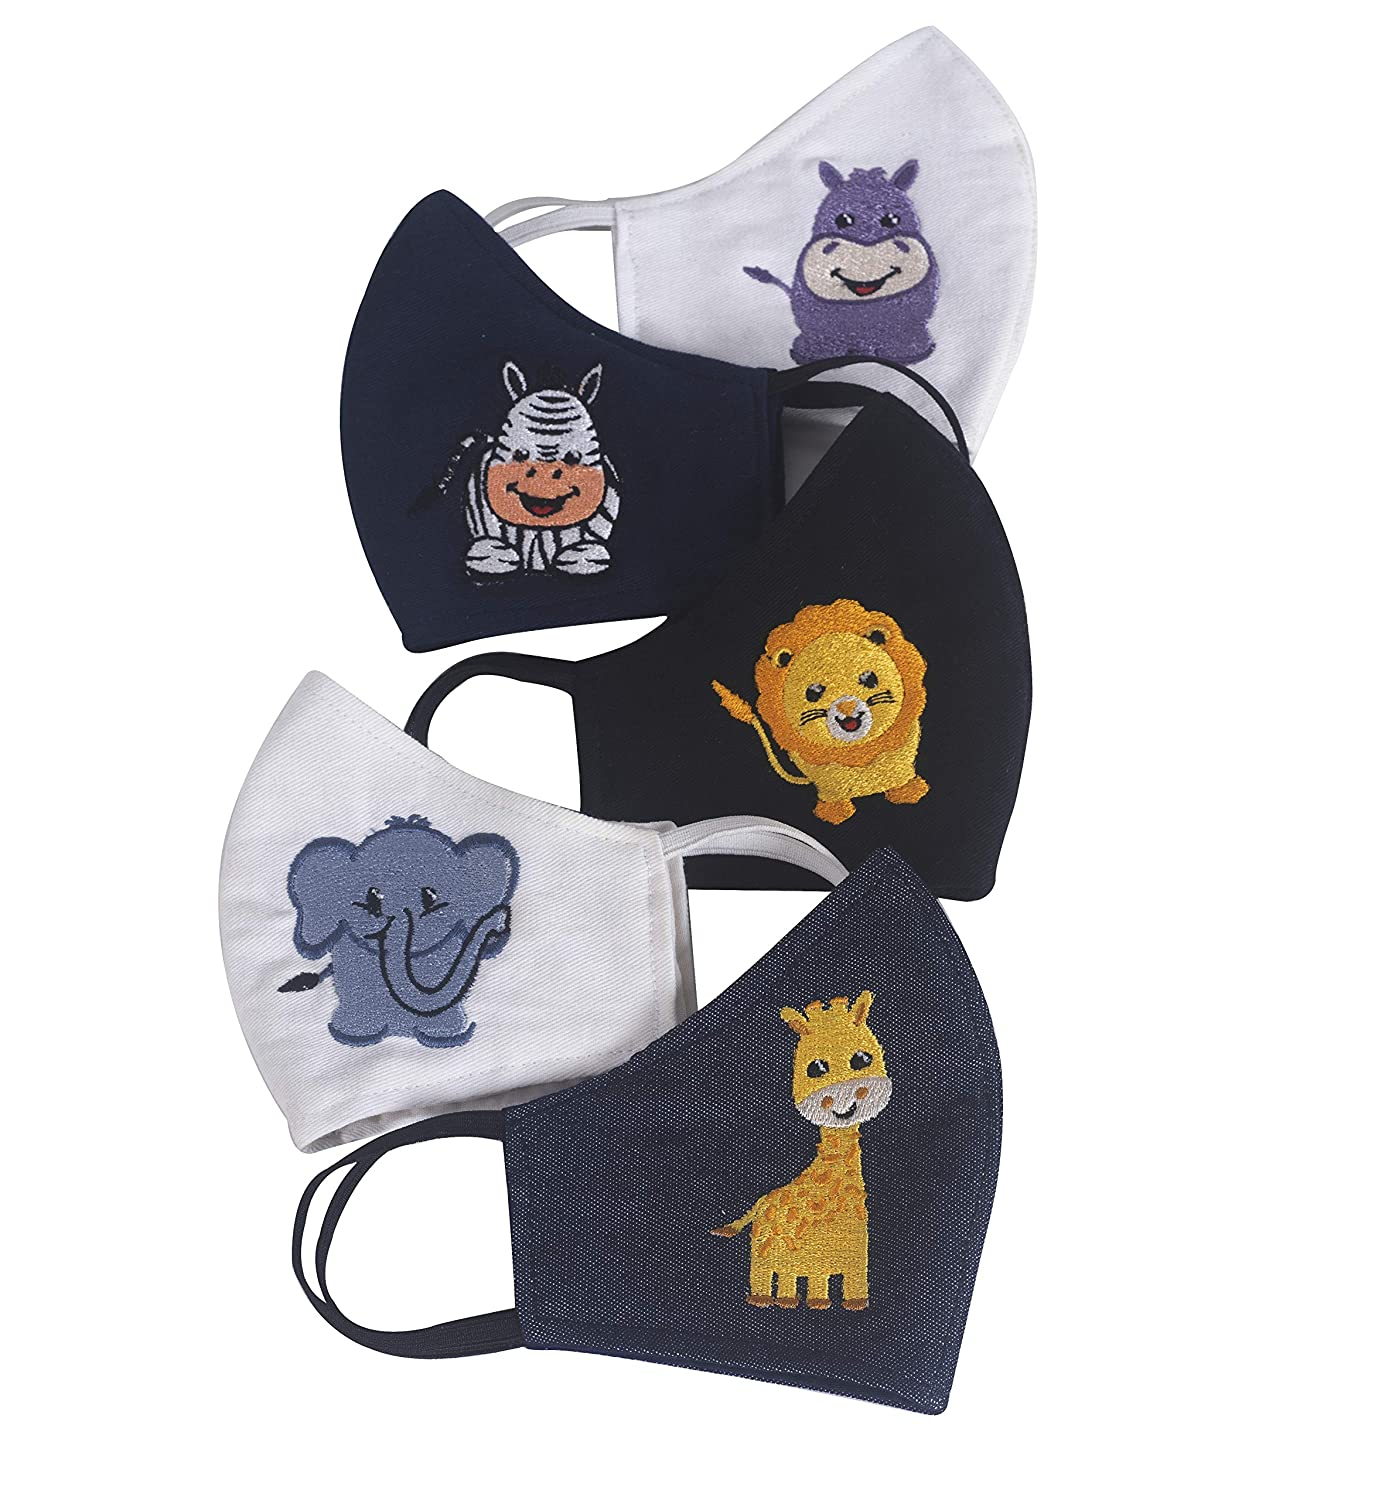 Zardozi Creations 100% Cotton Breathable Embroidered Masks for Kids | Multicolor | Animals | Set of 5 (Small 2-4 Years)